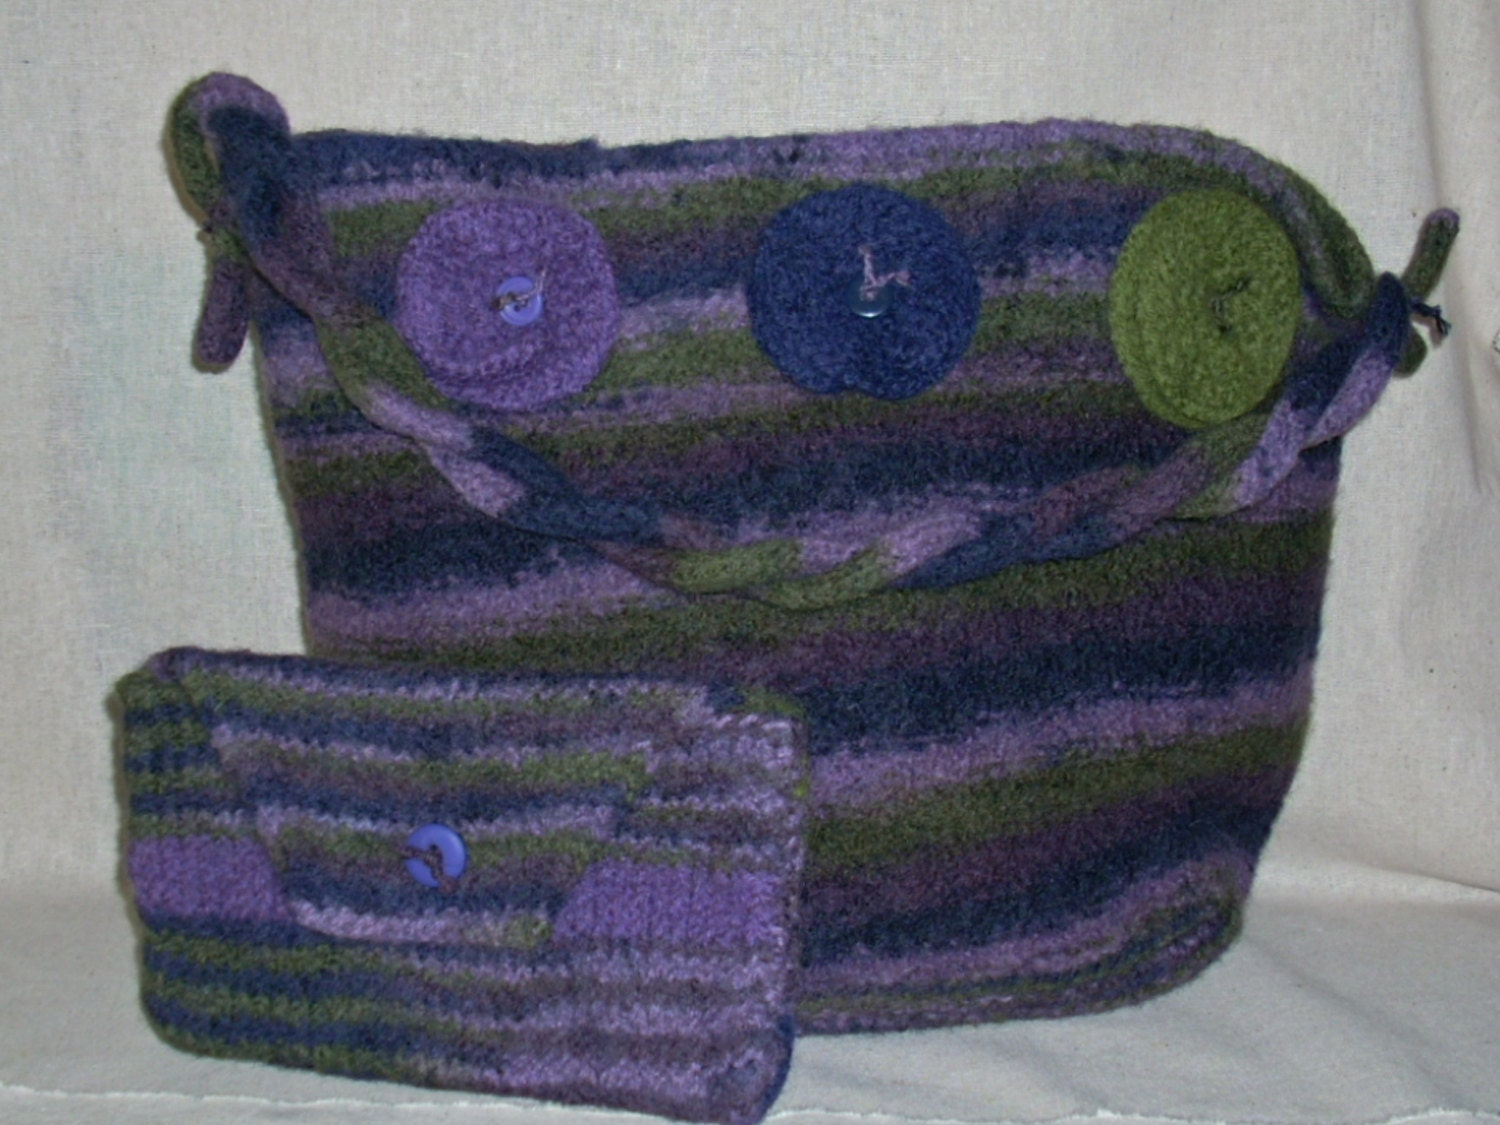 Rose Hand Knit Felted Bag and Cosmetic Clutch in Navy Olive